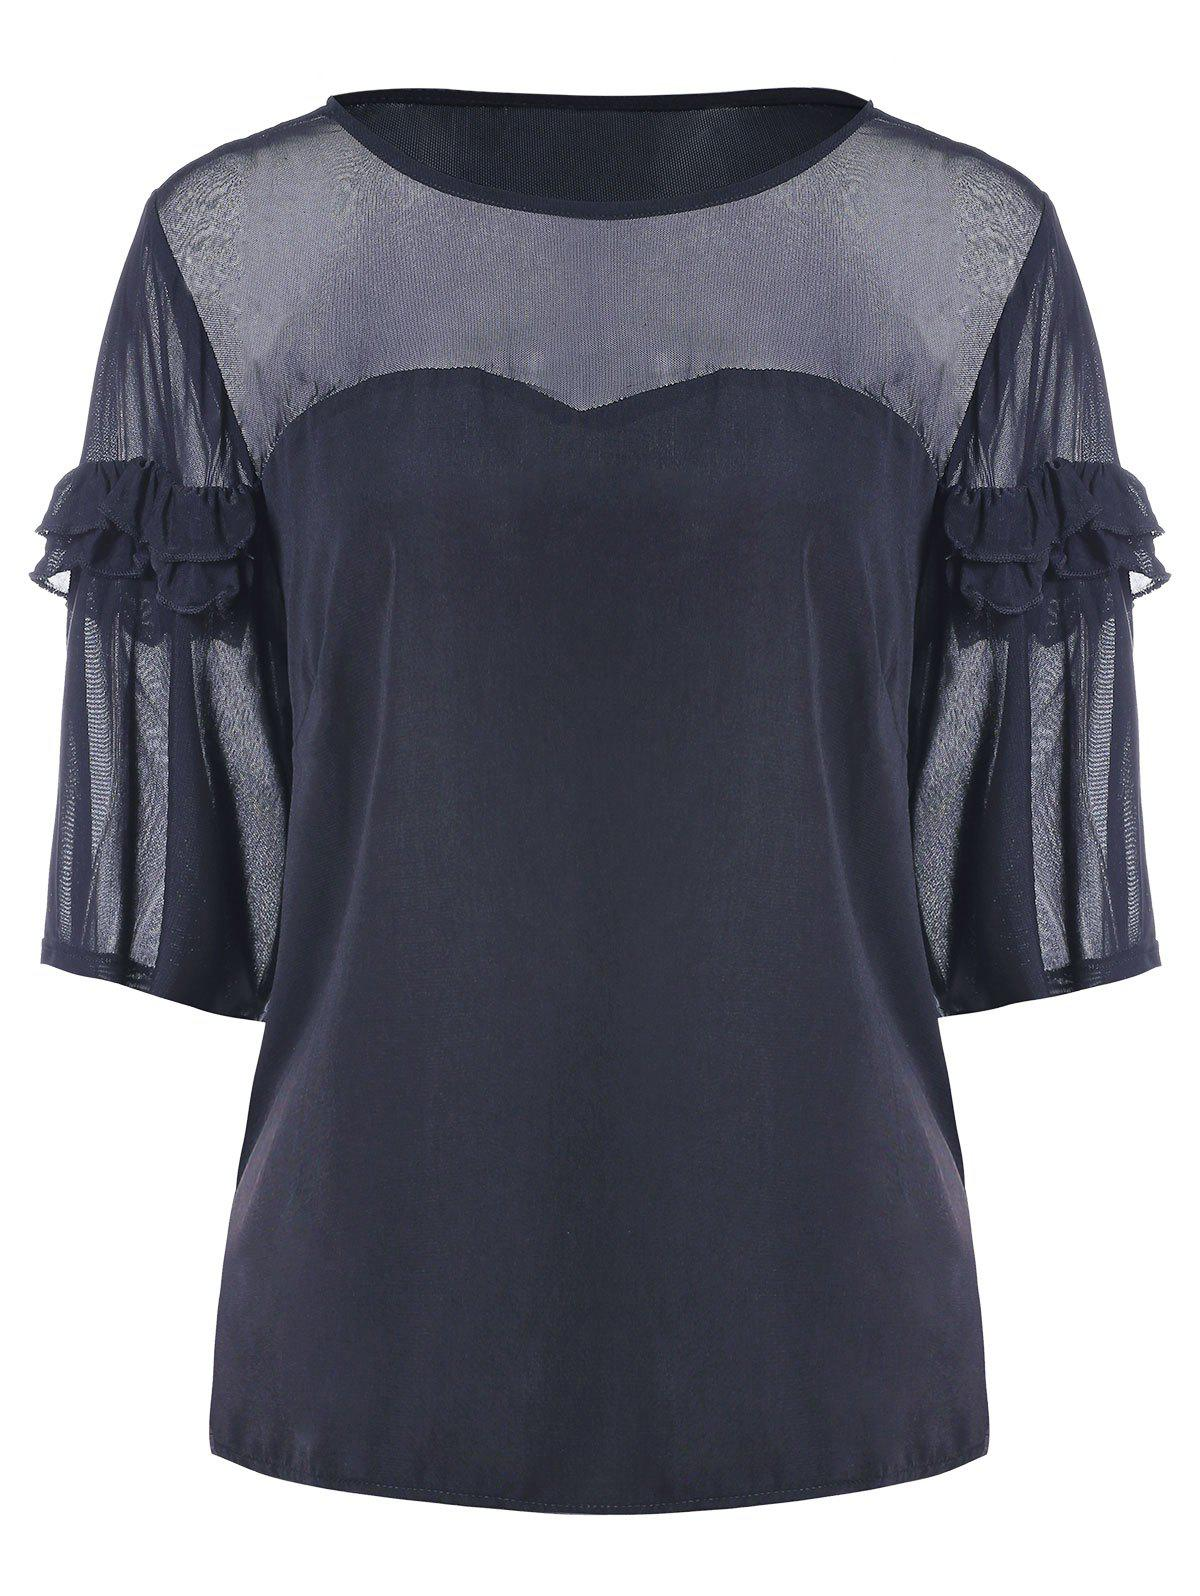 Ruffles Panel Blouse - DARK SLATE BLUE M